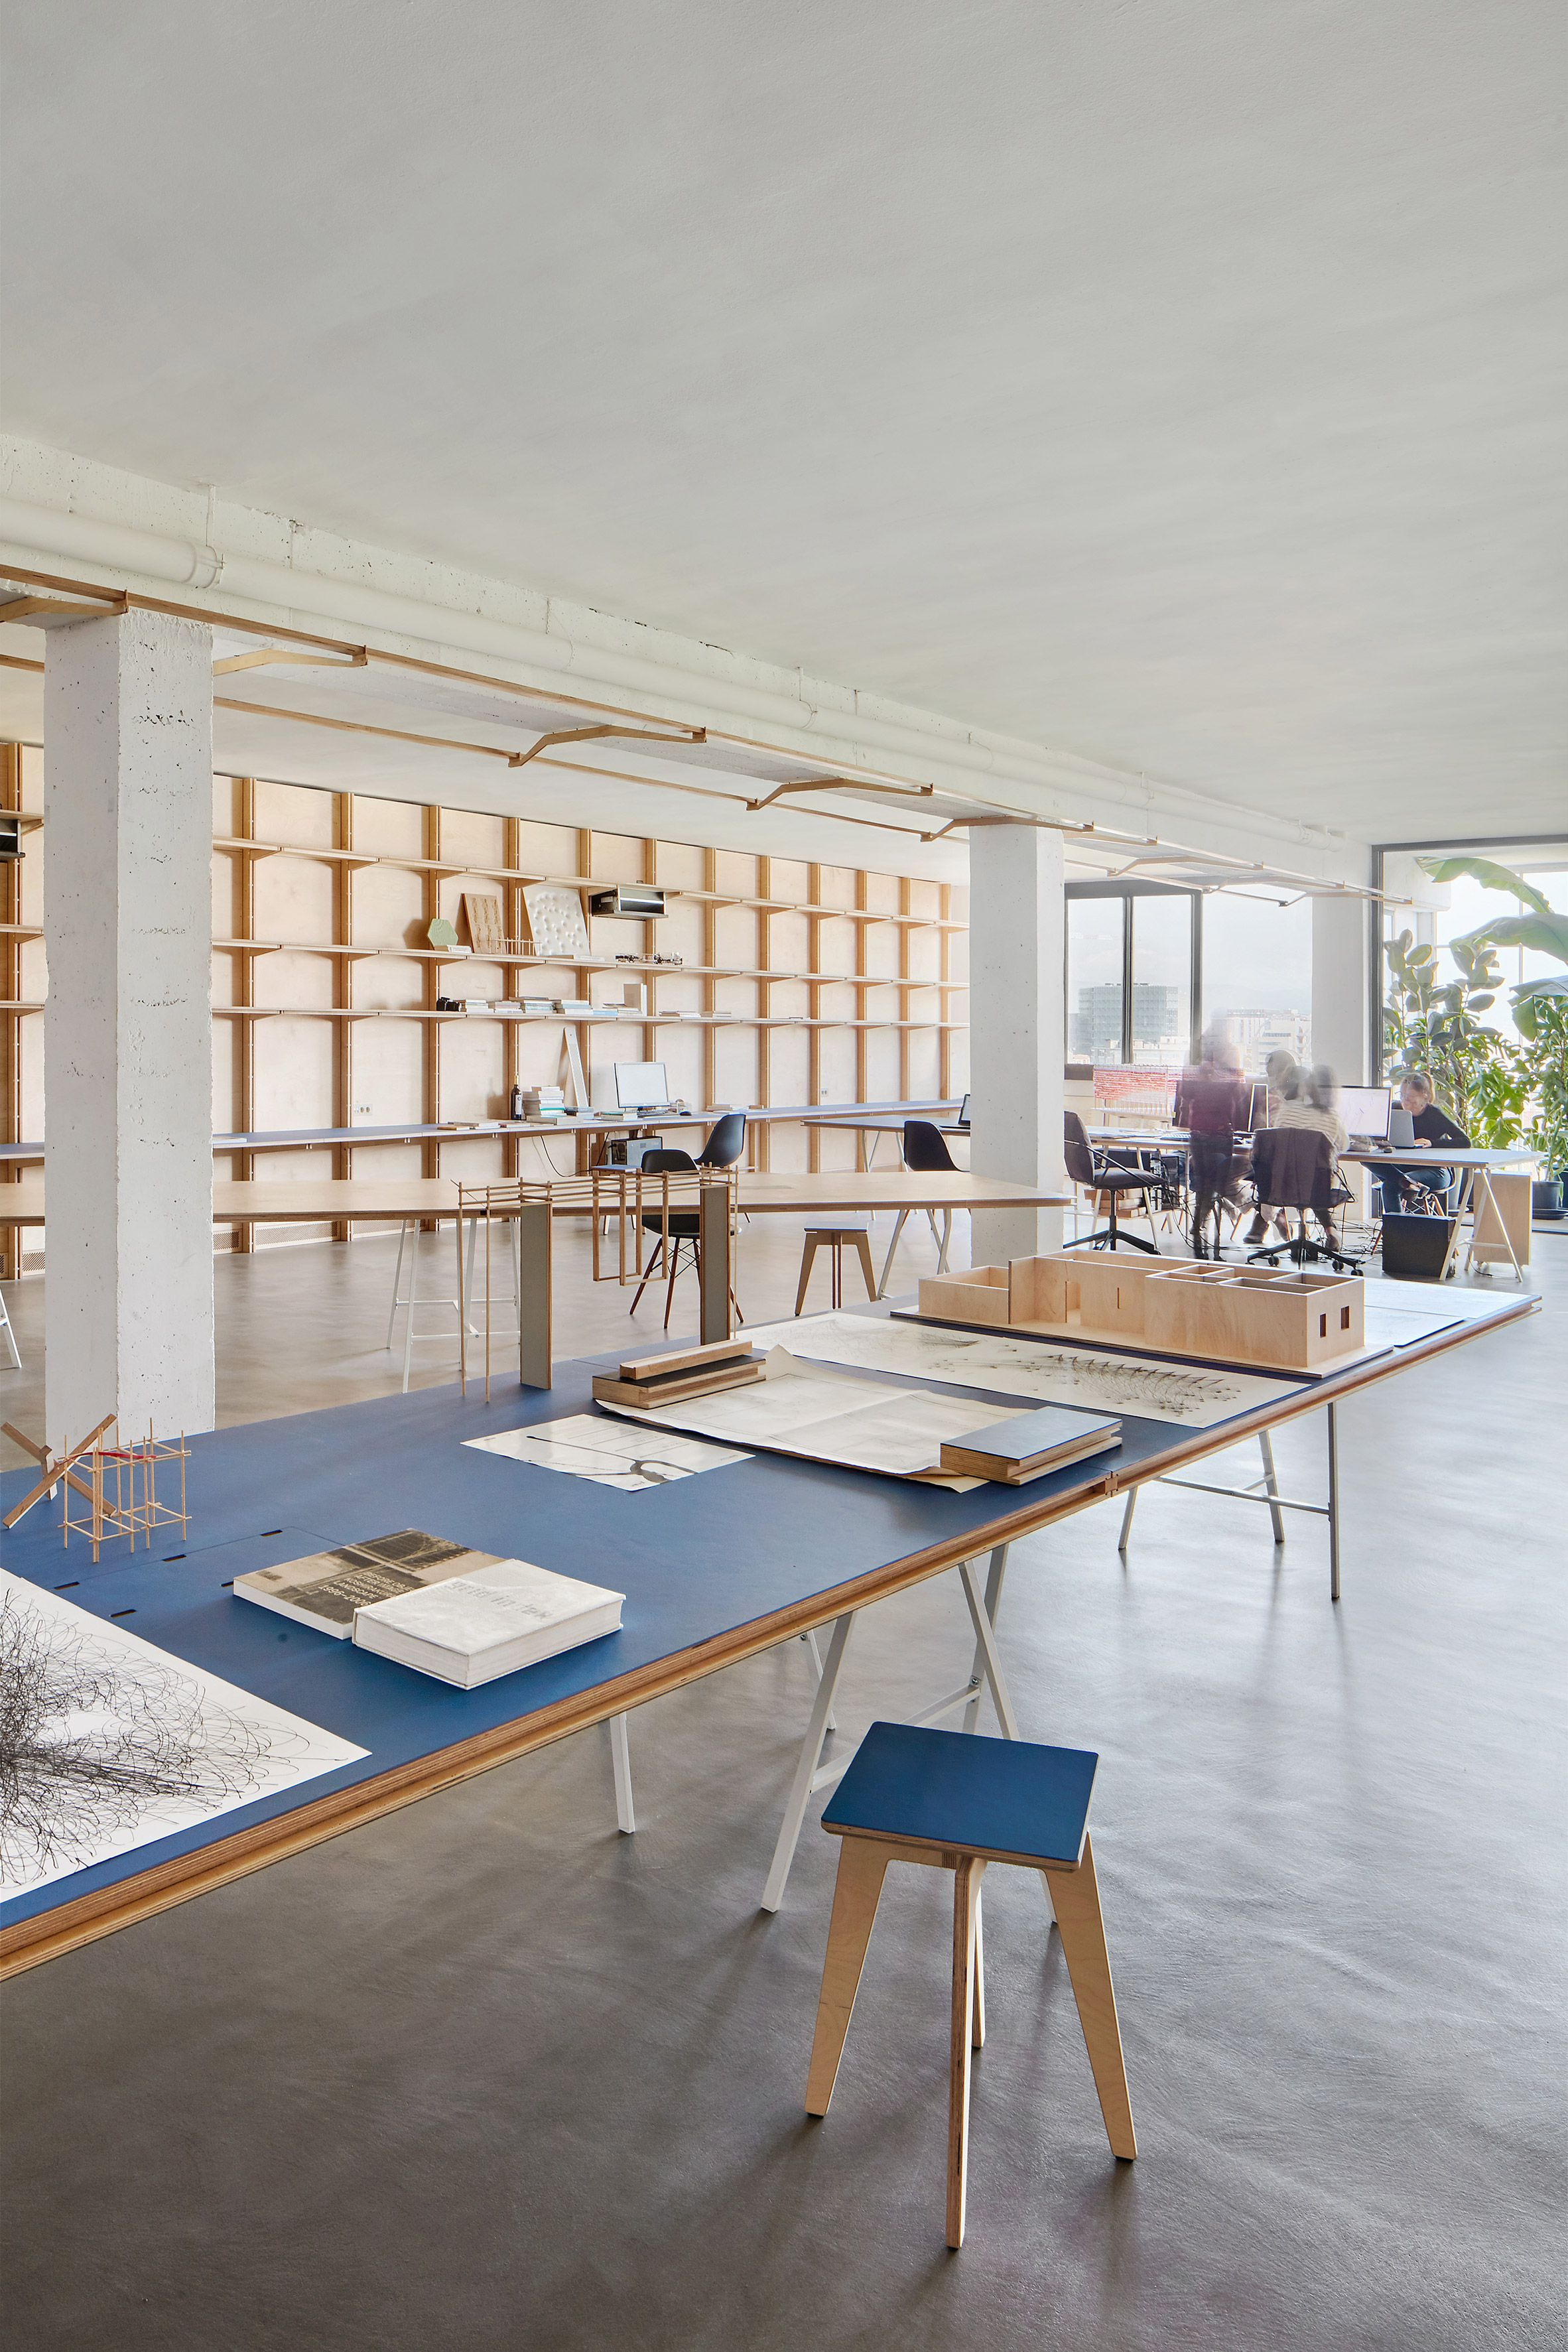 Barcelona warehouse transformed into flexible co working space